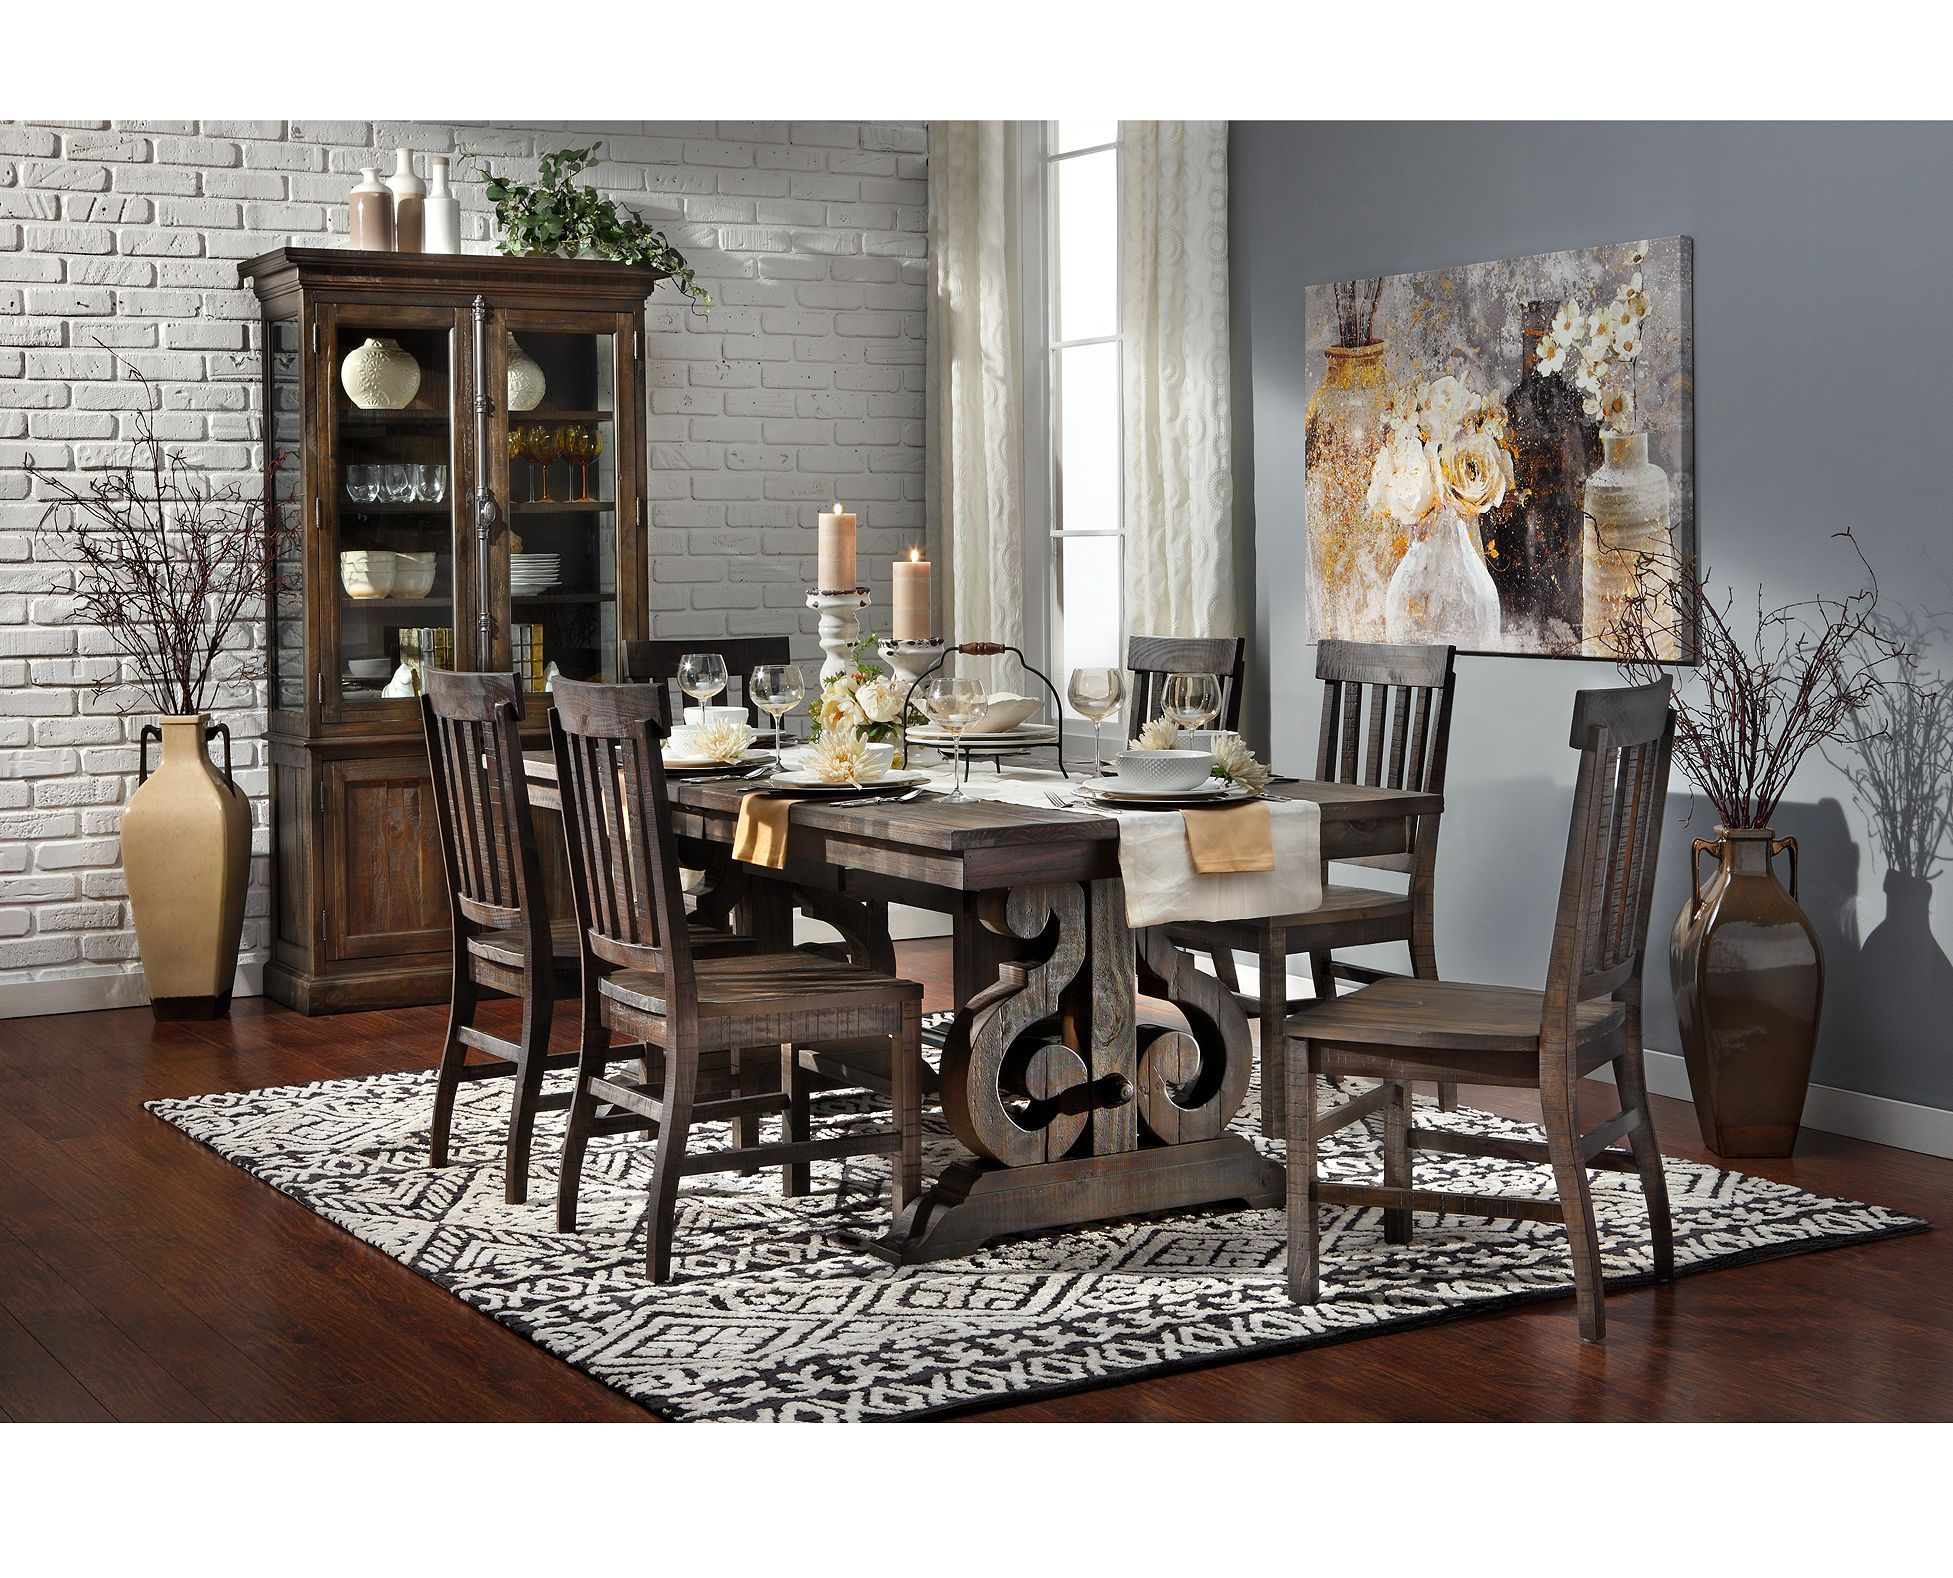 Sedona Dining Table Rowe Furniture Dining Room Bench Furniture